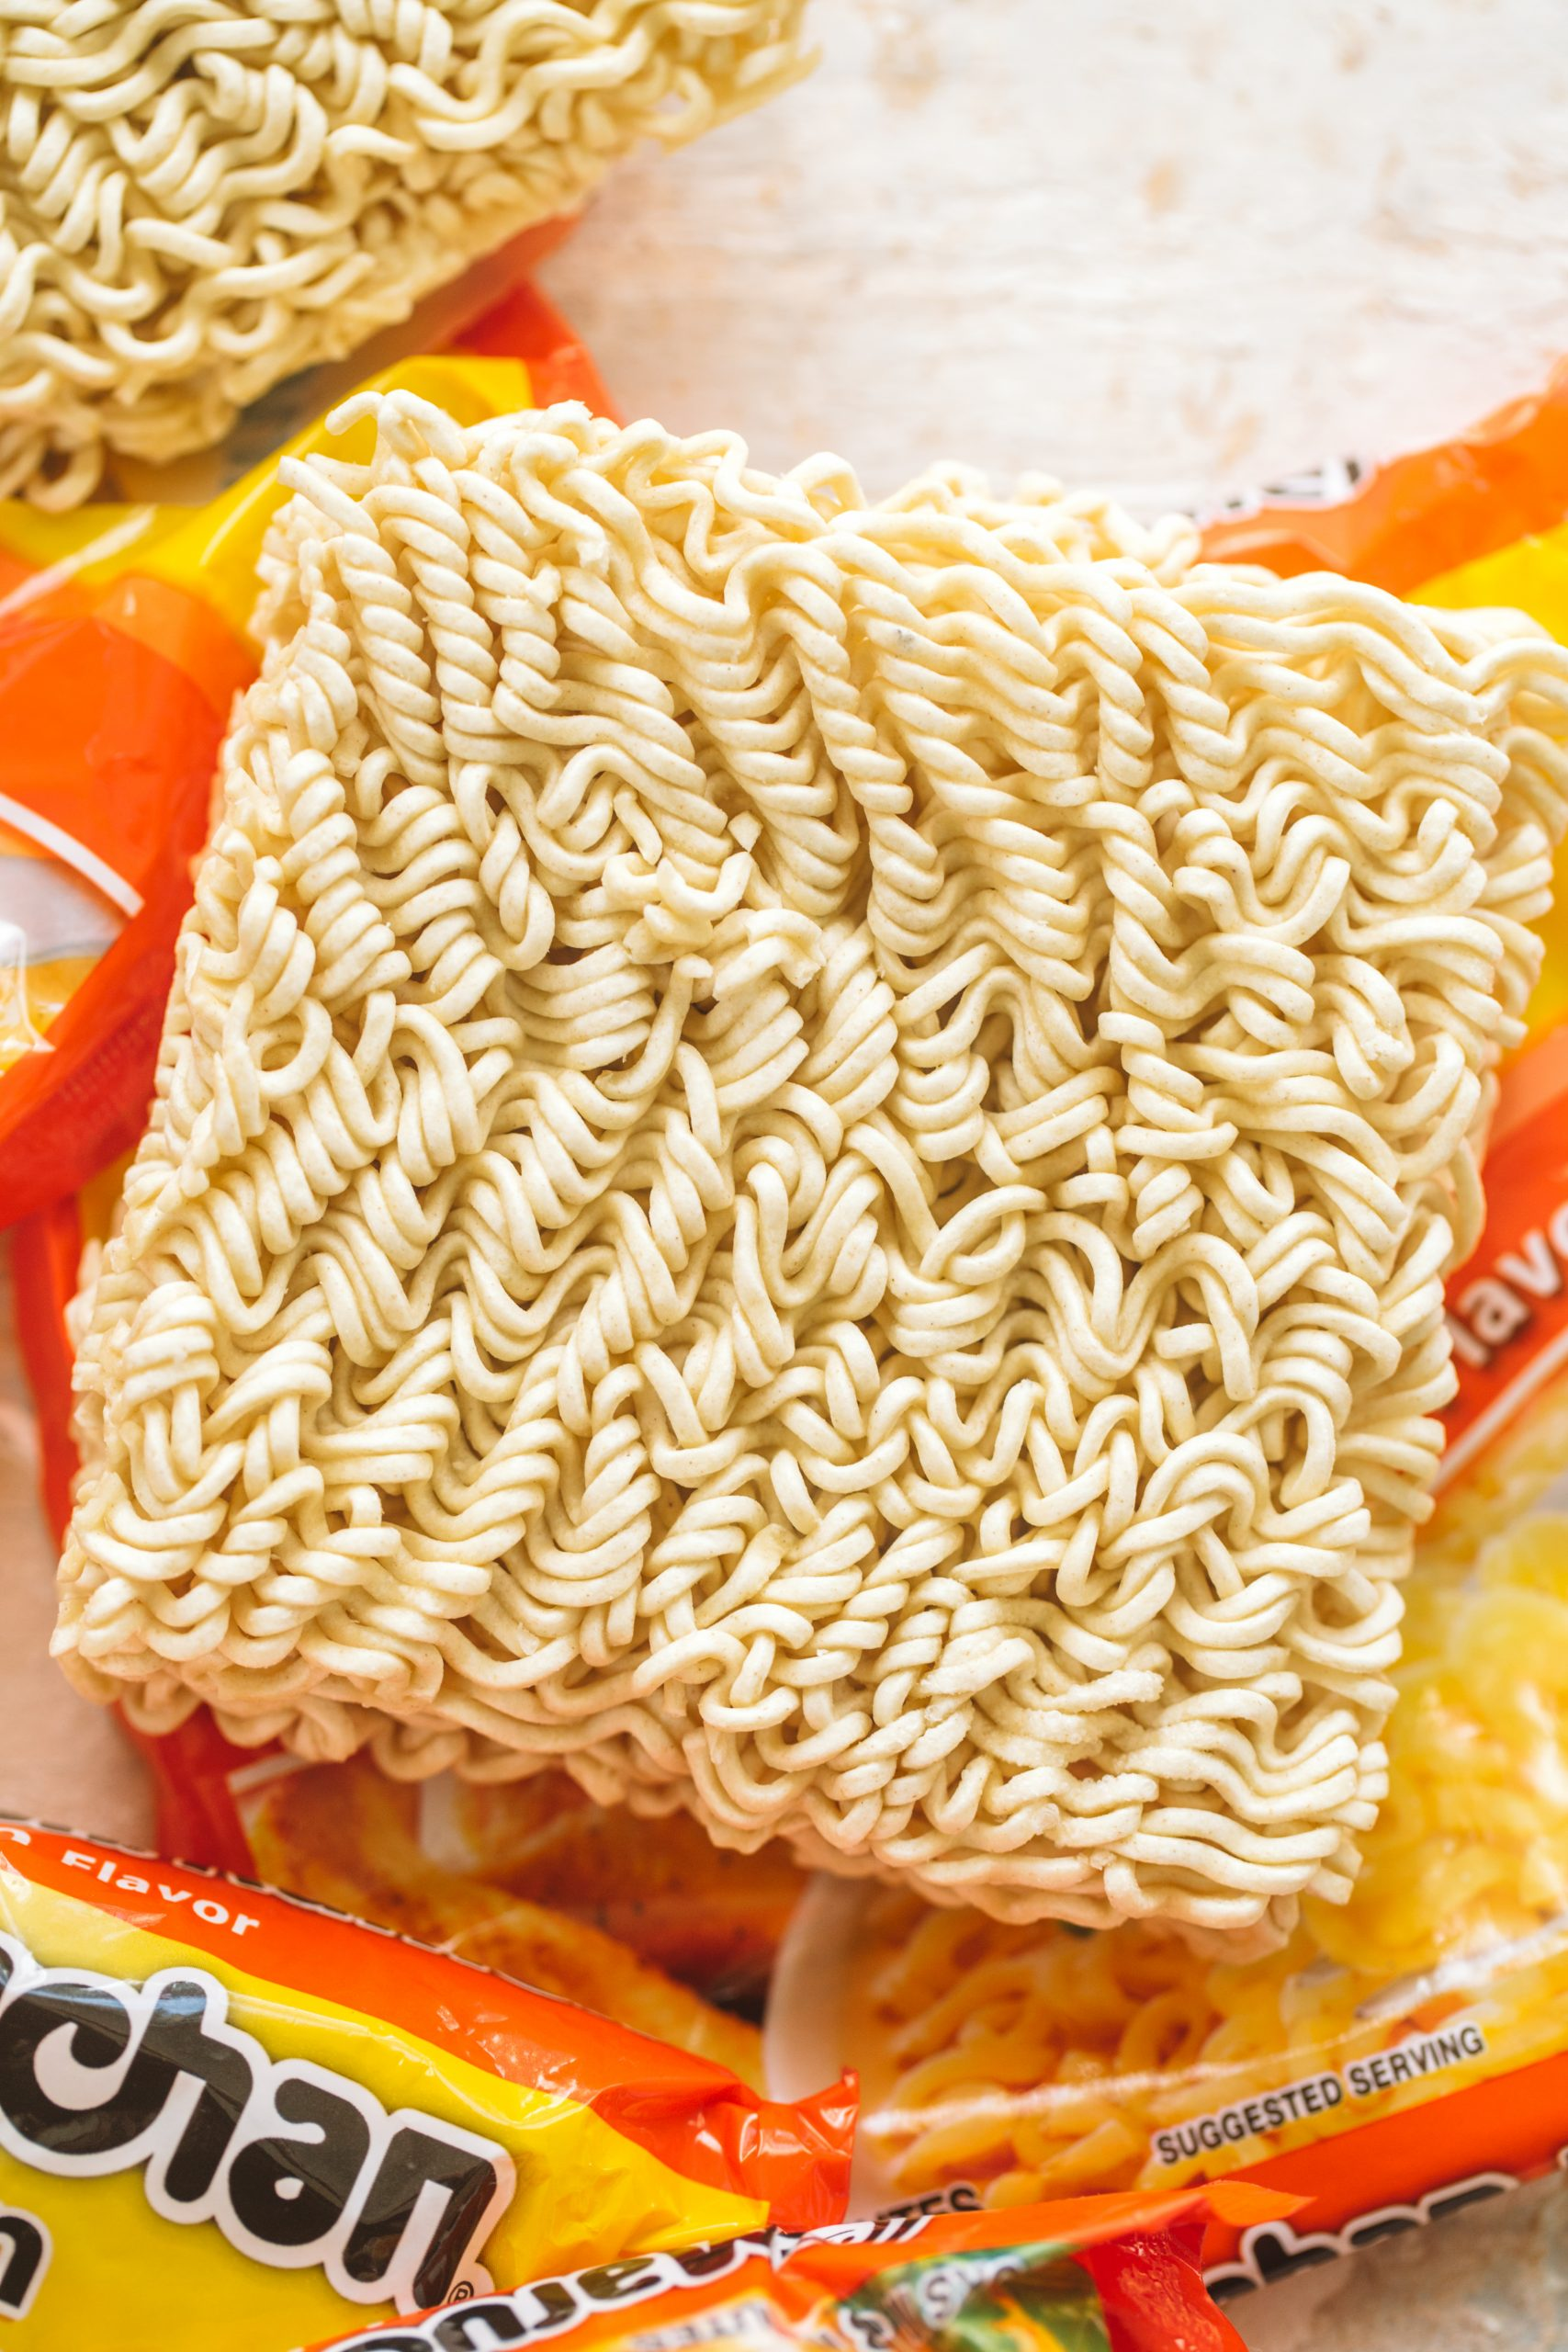 Packaged dry ramen noodles.